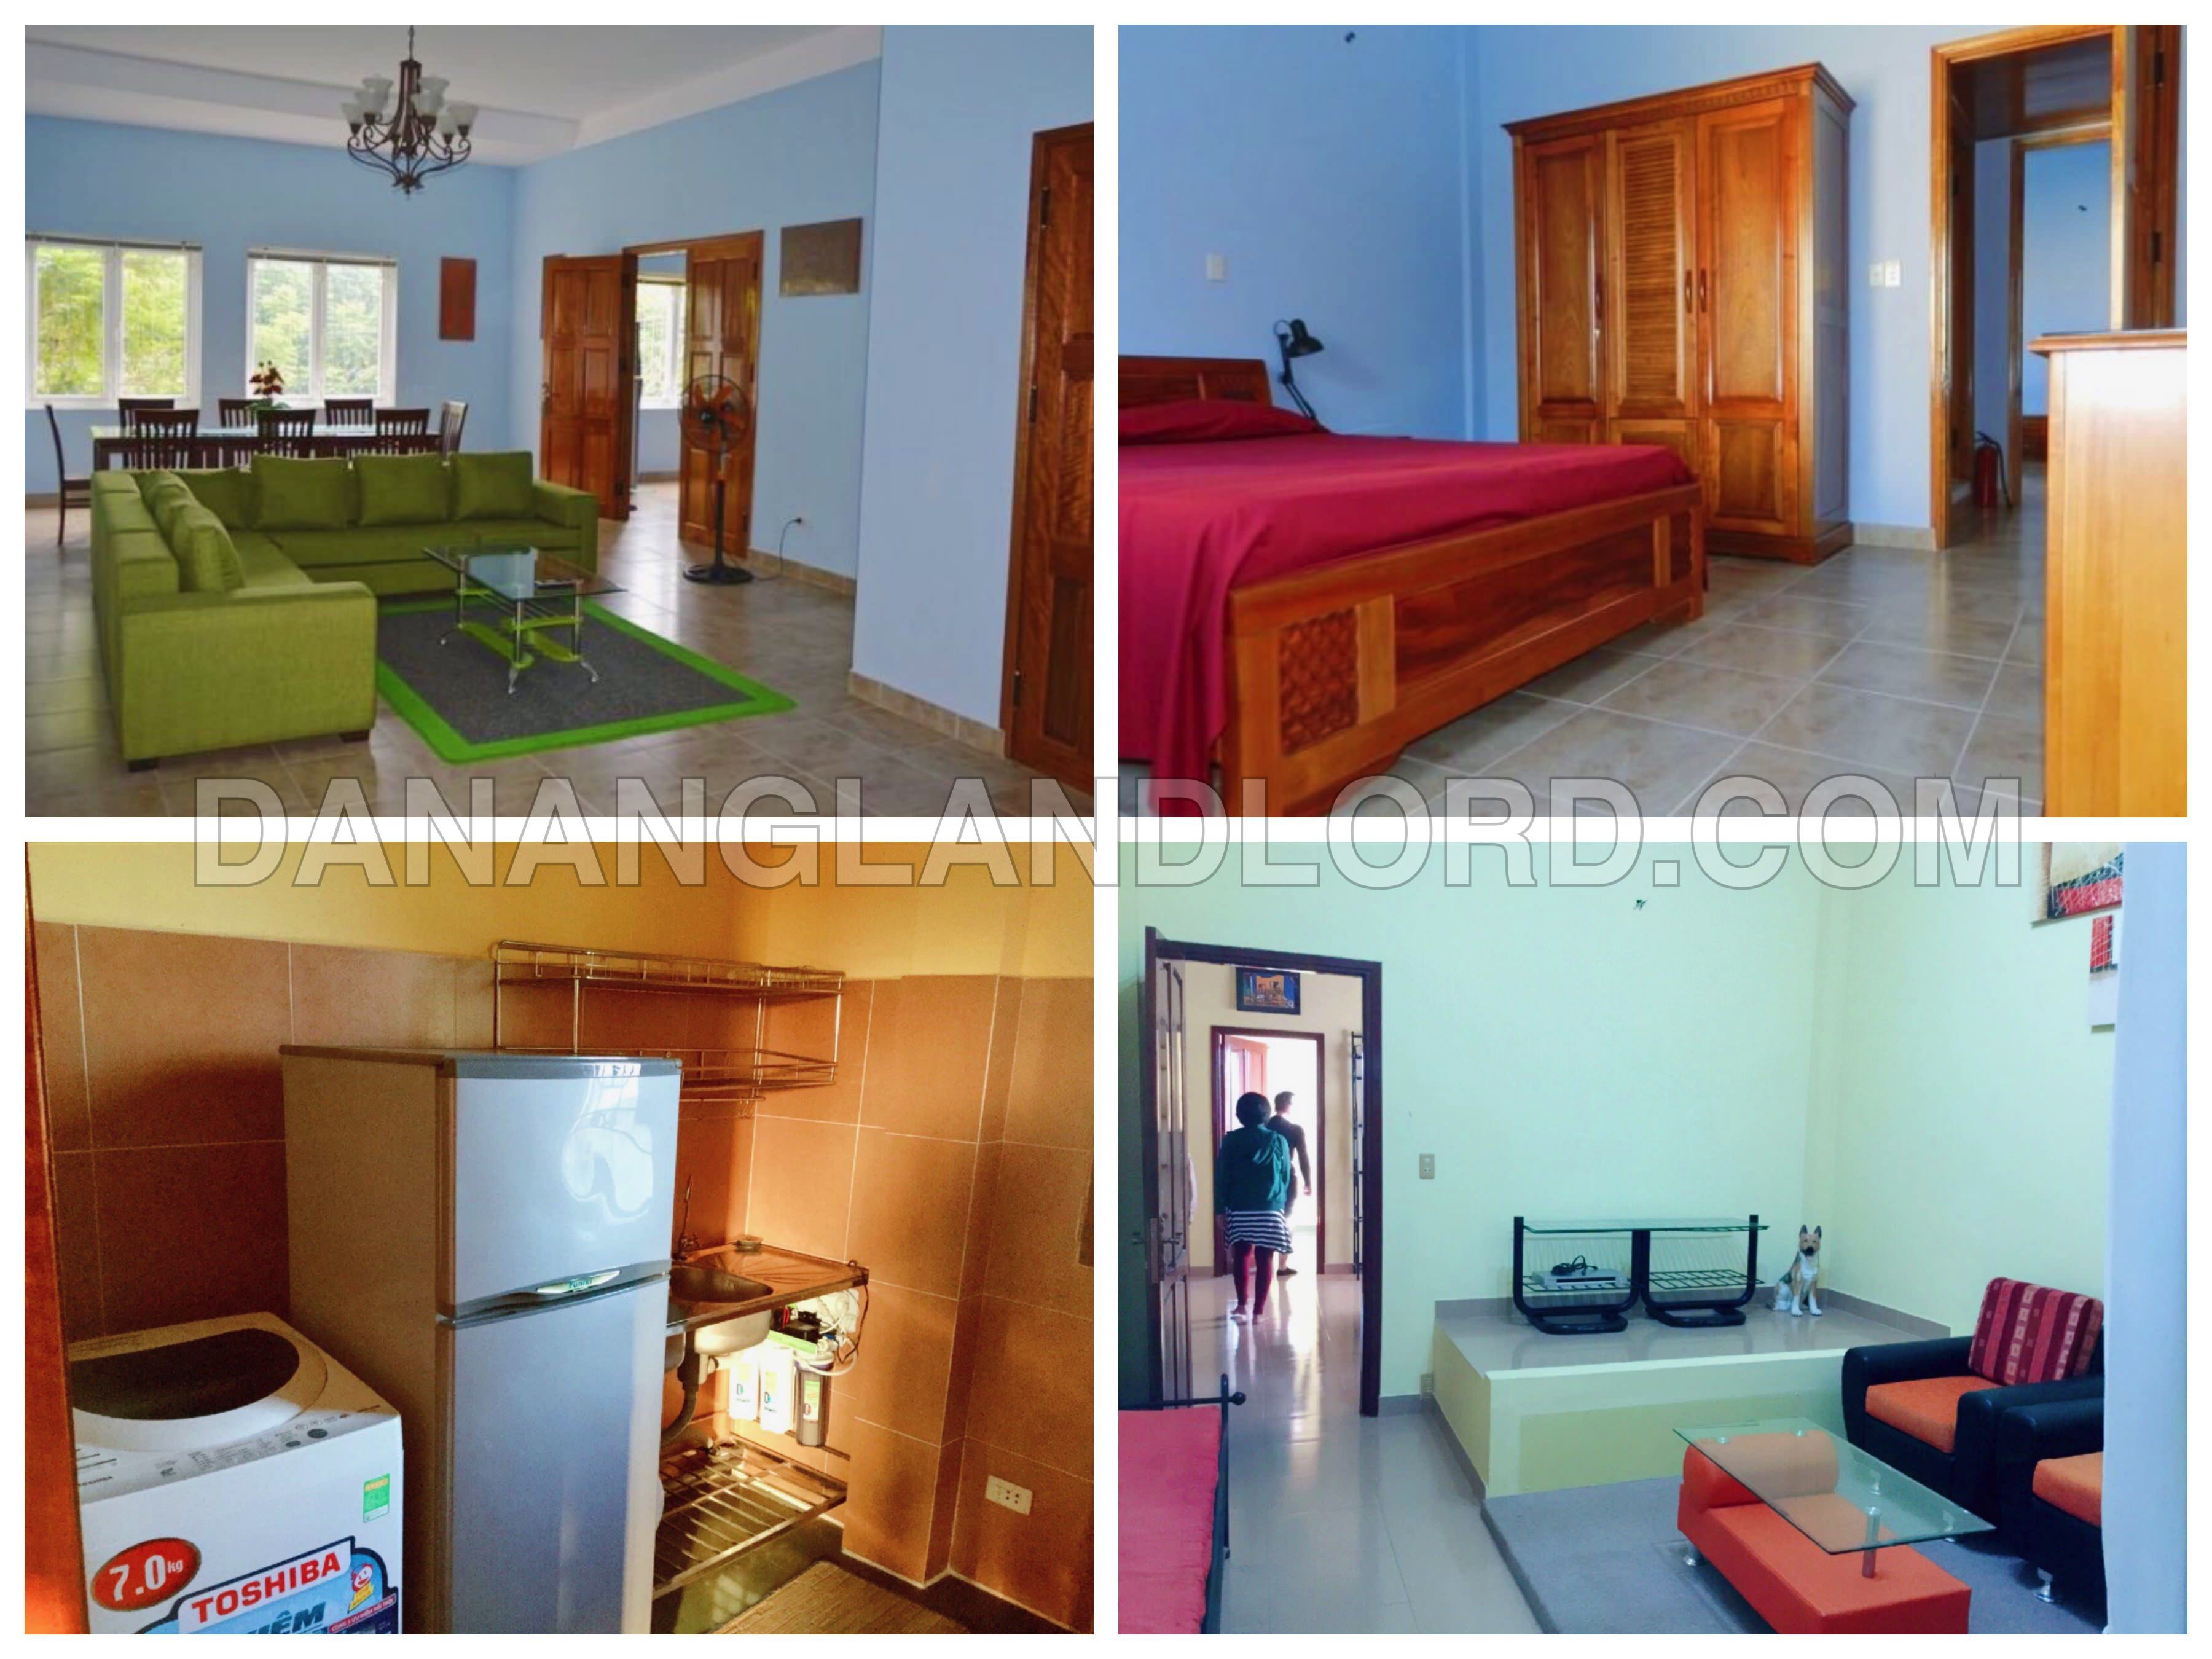 The 4 bedroom apartment, fully furnished close to Vincom center